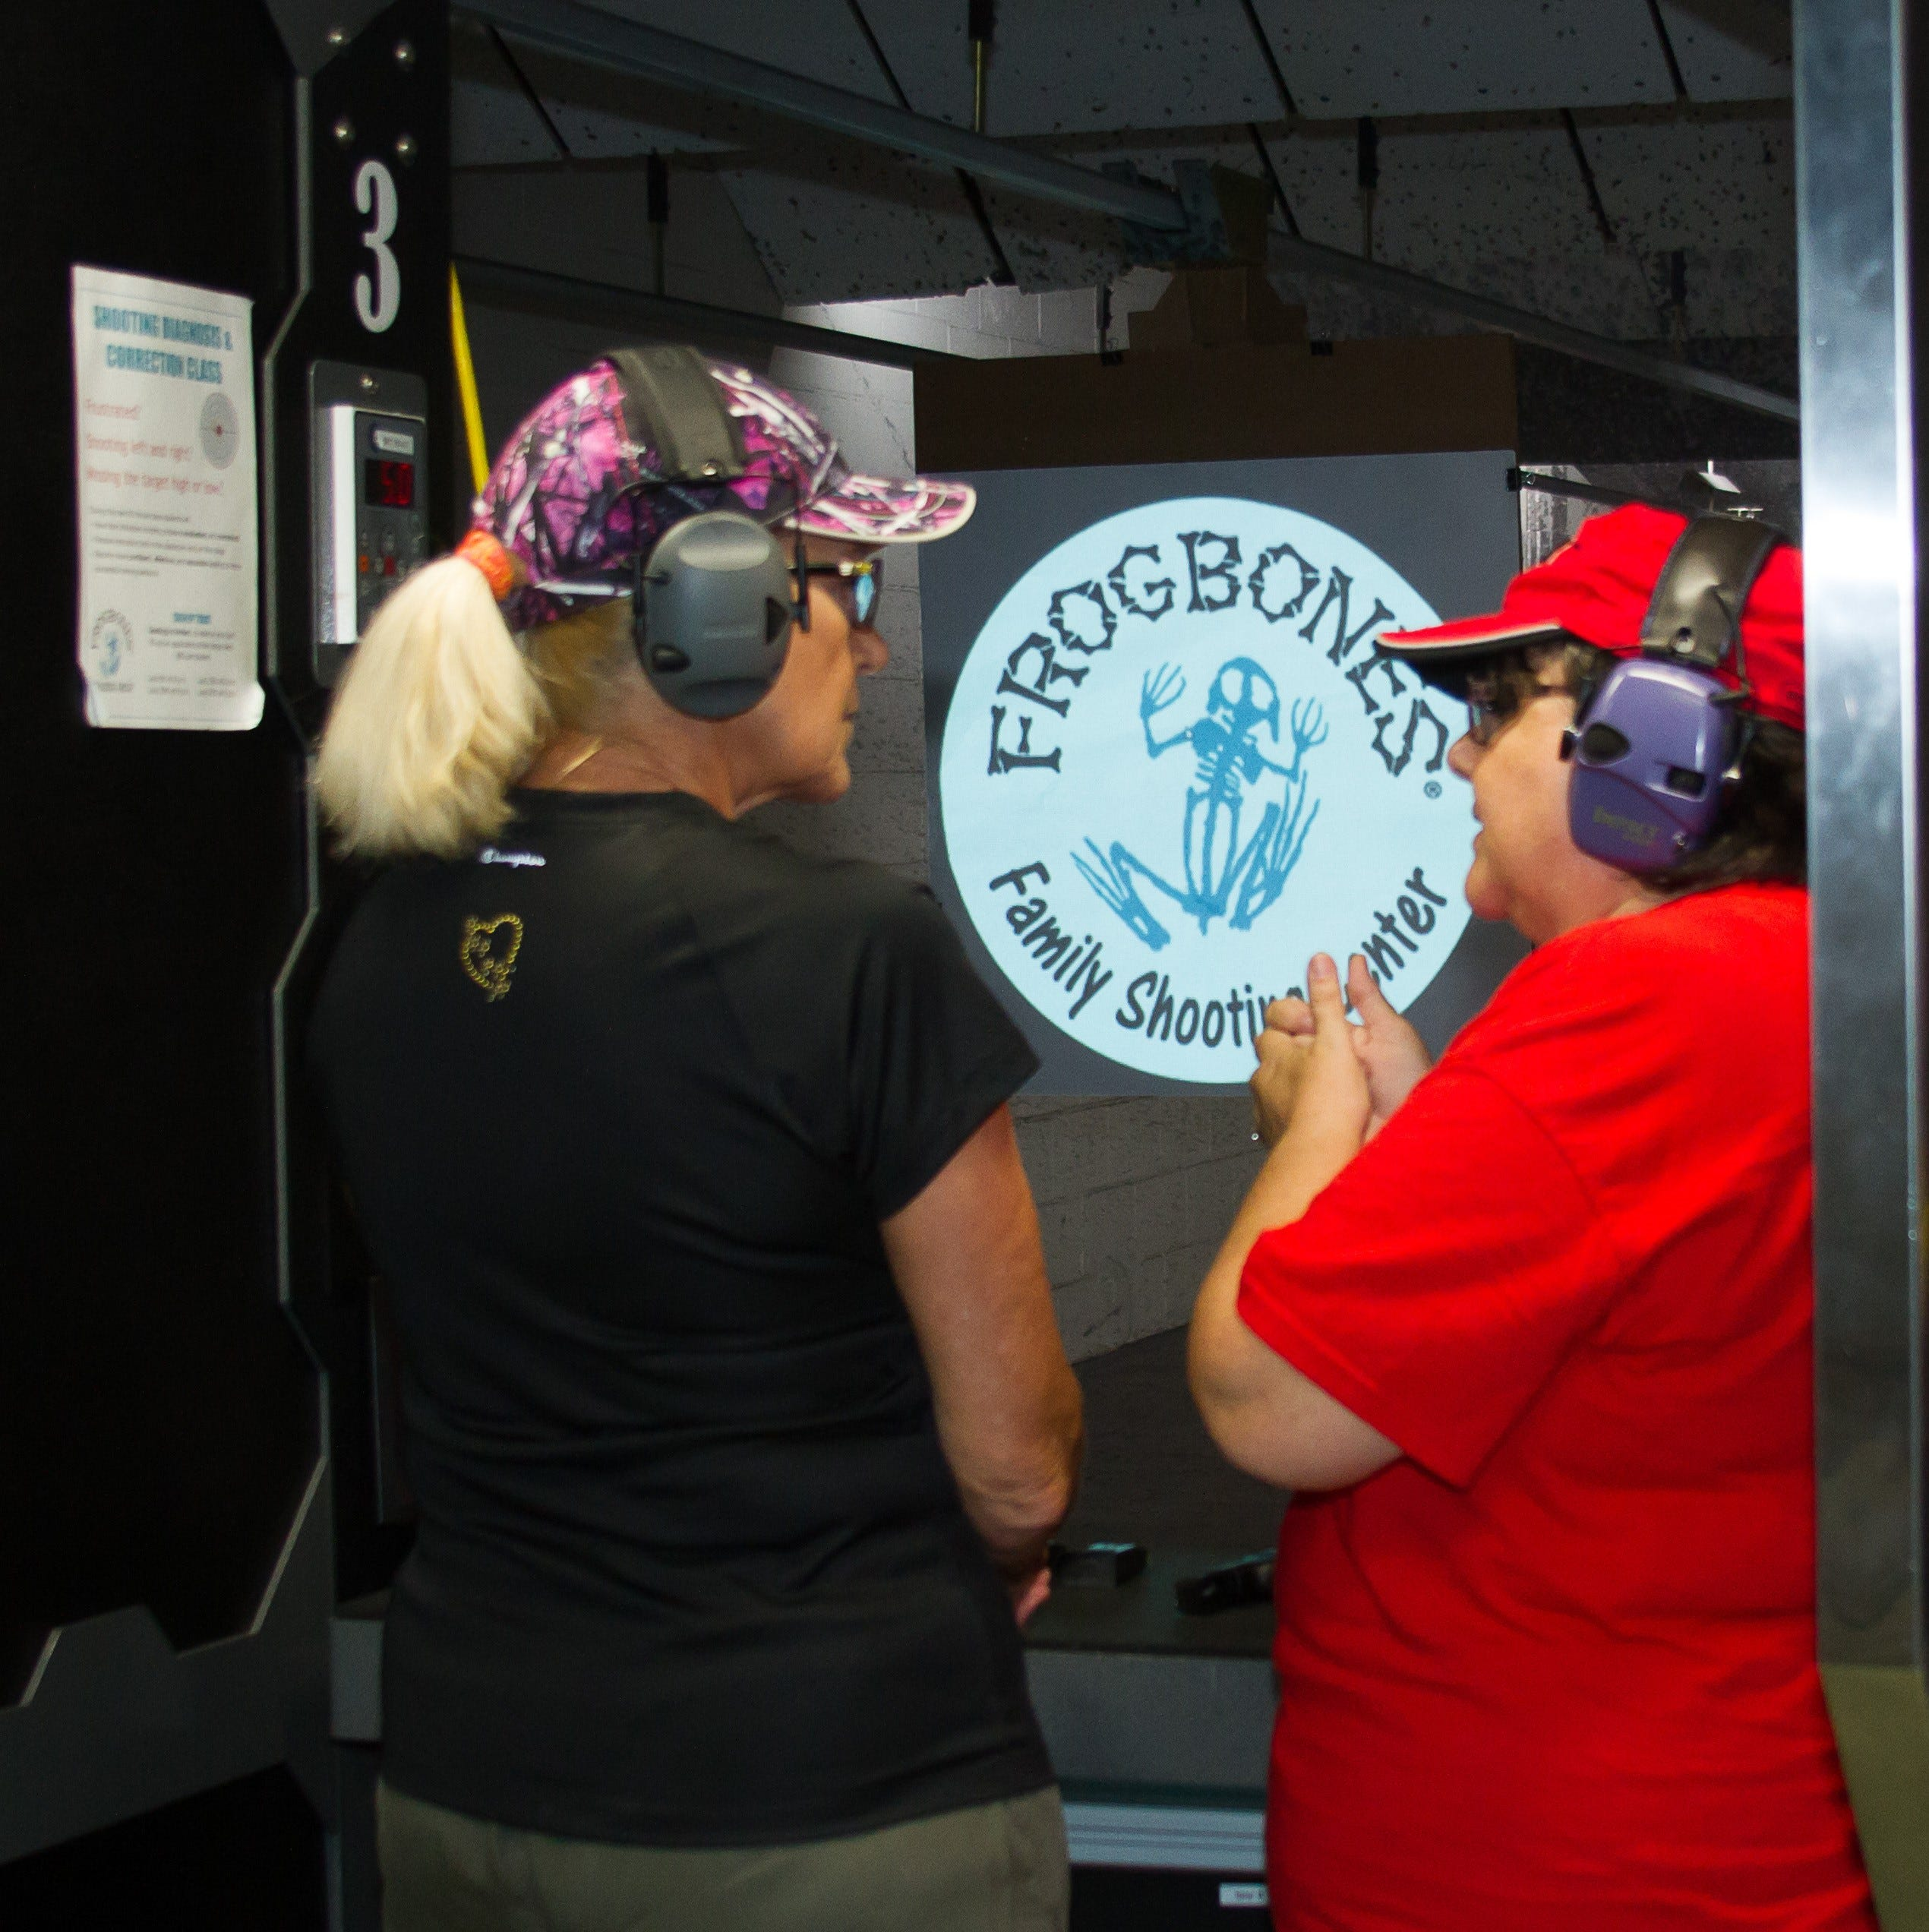 Women bond over handguns and dinner at Frogbones in Melbourne